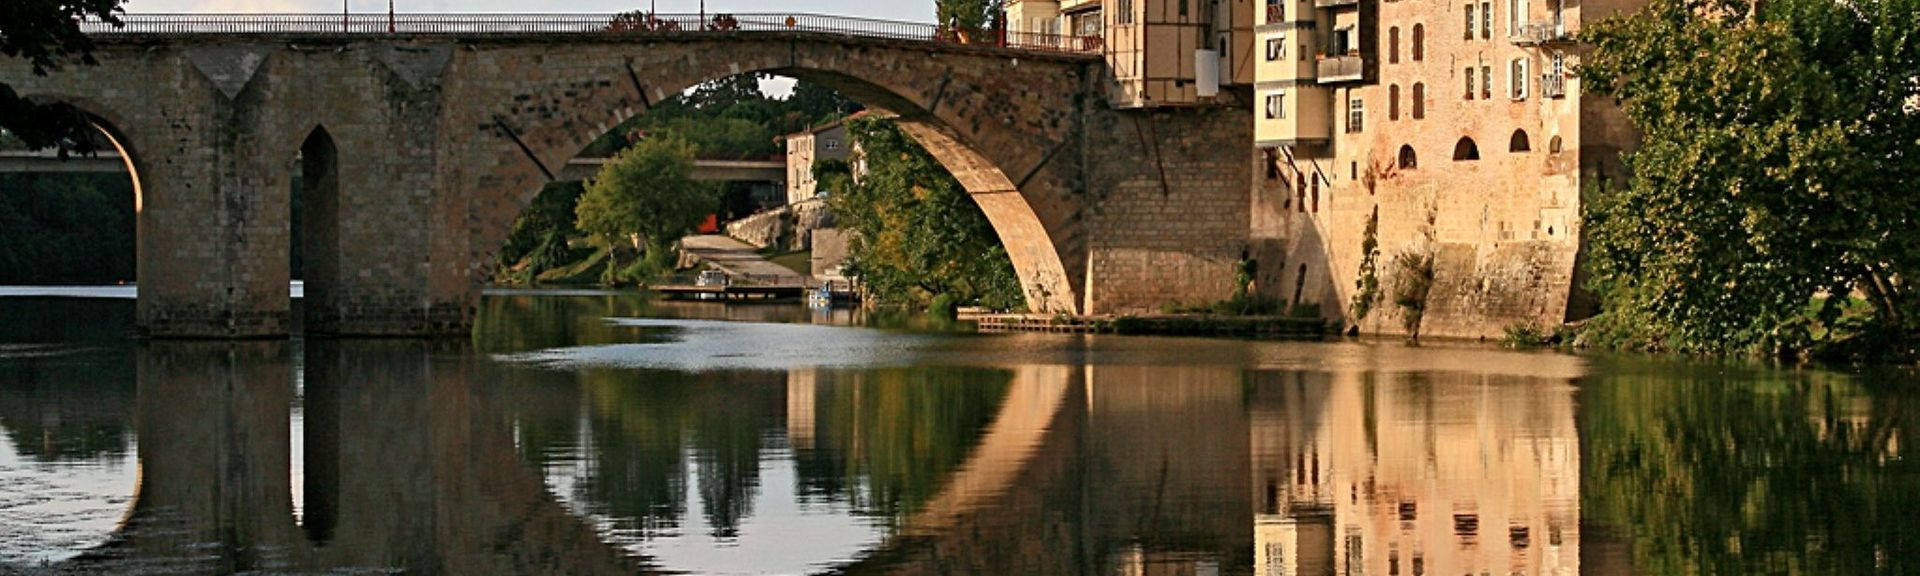 Montastruc, Lot-et-Garonne, France